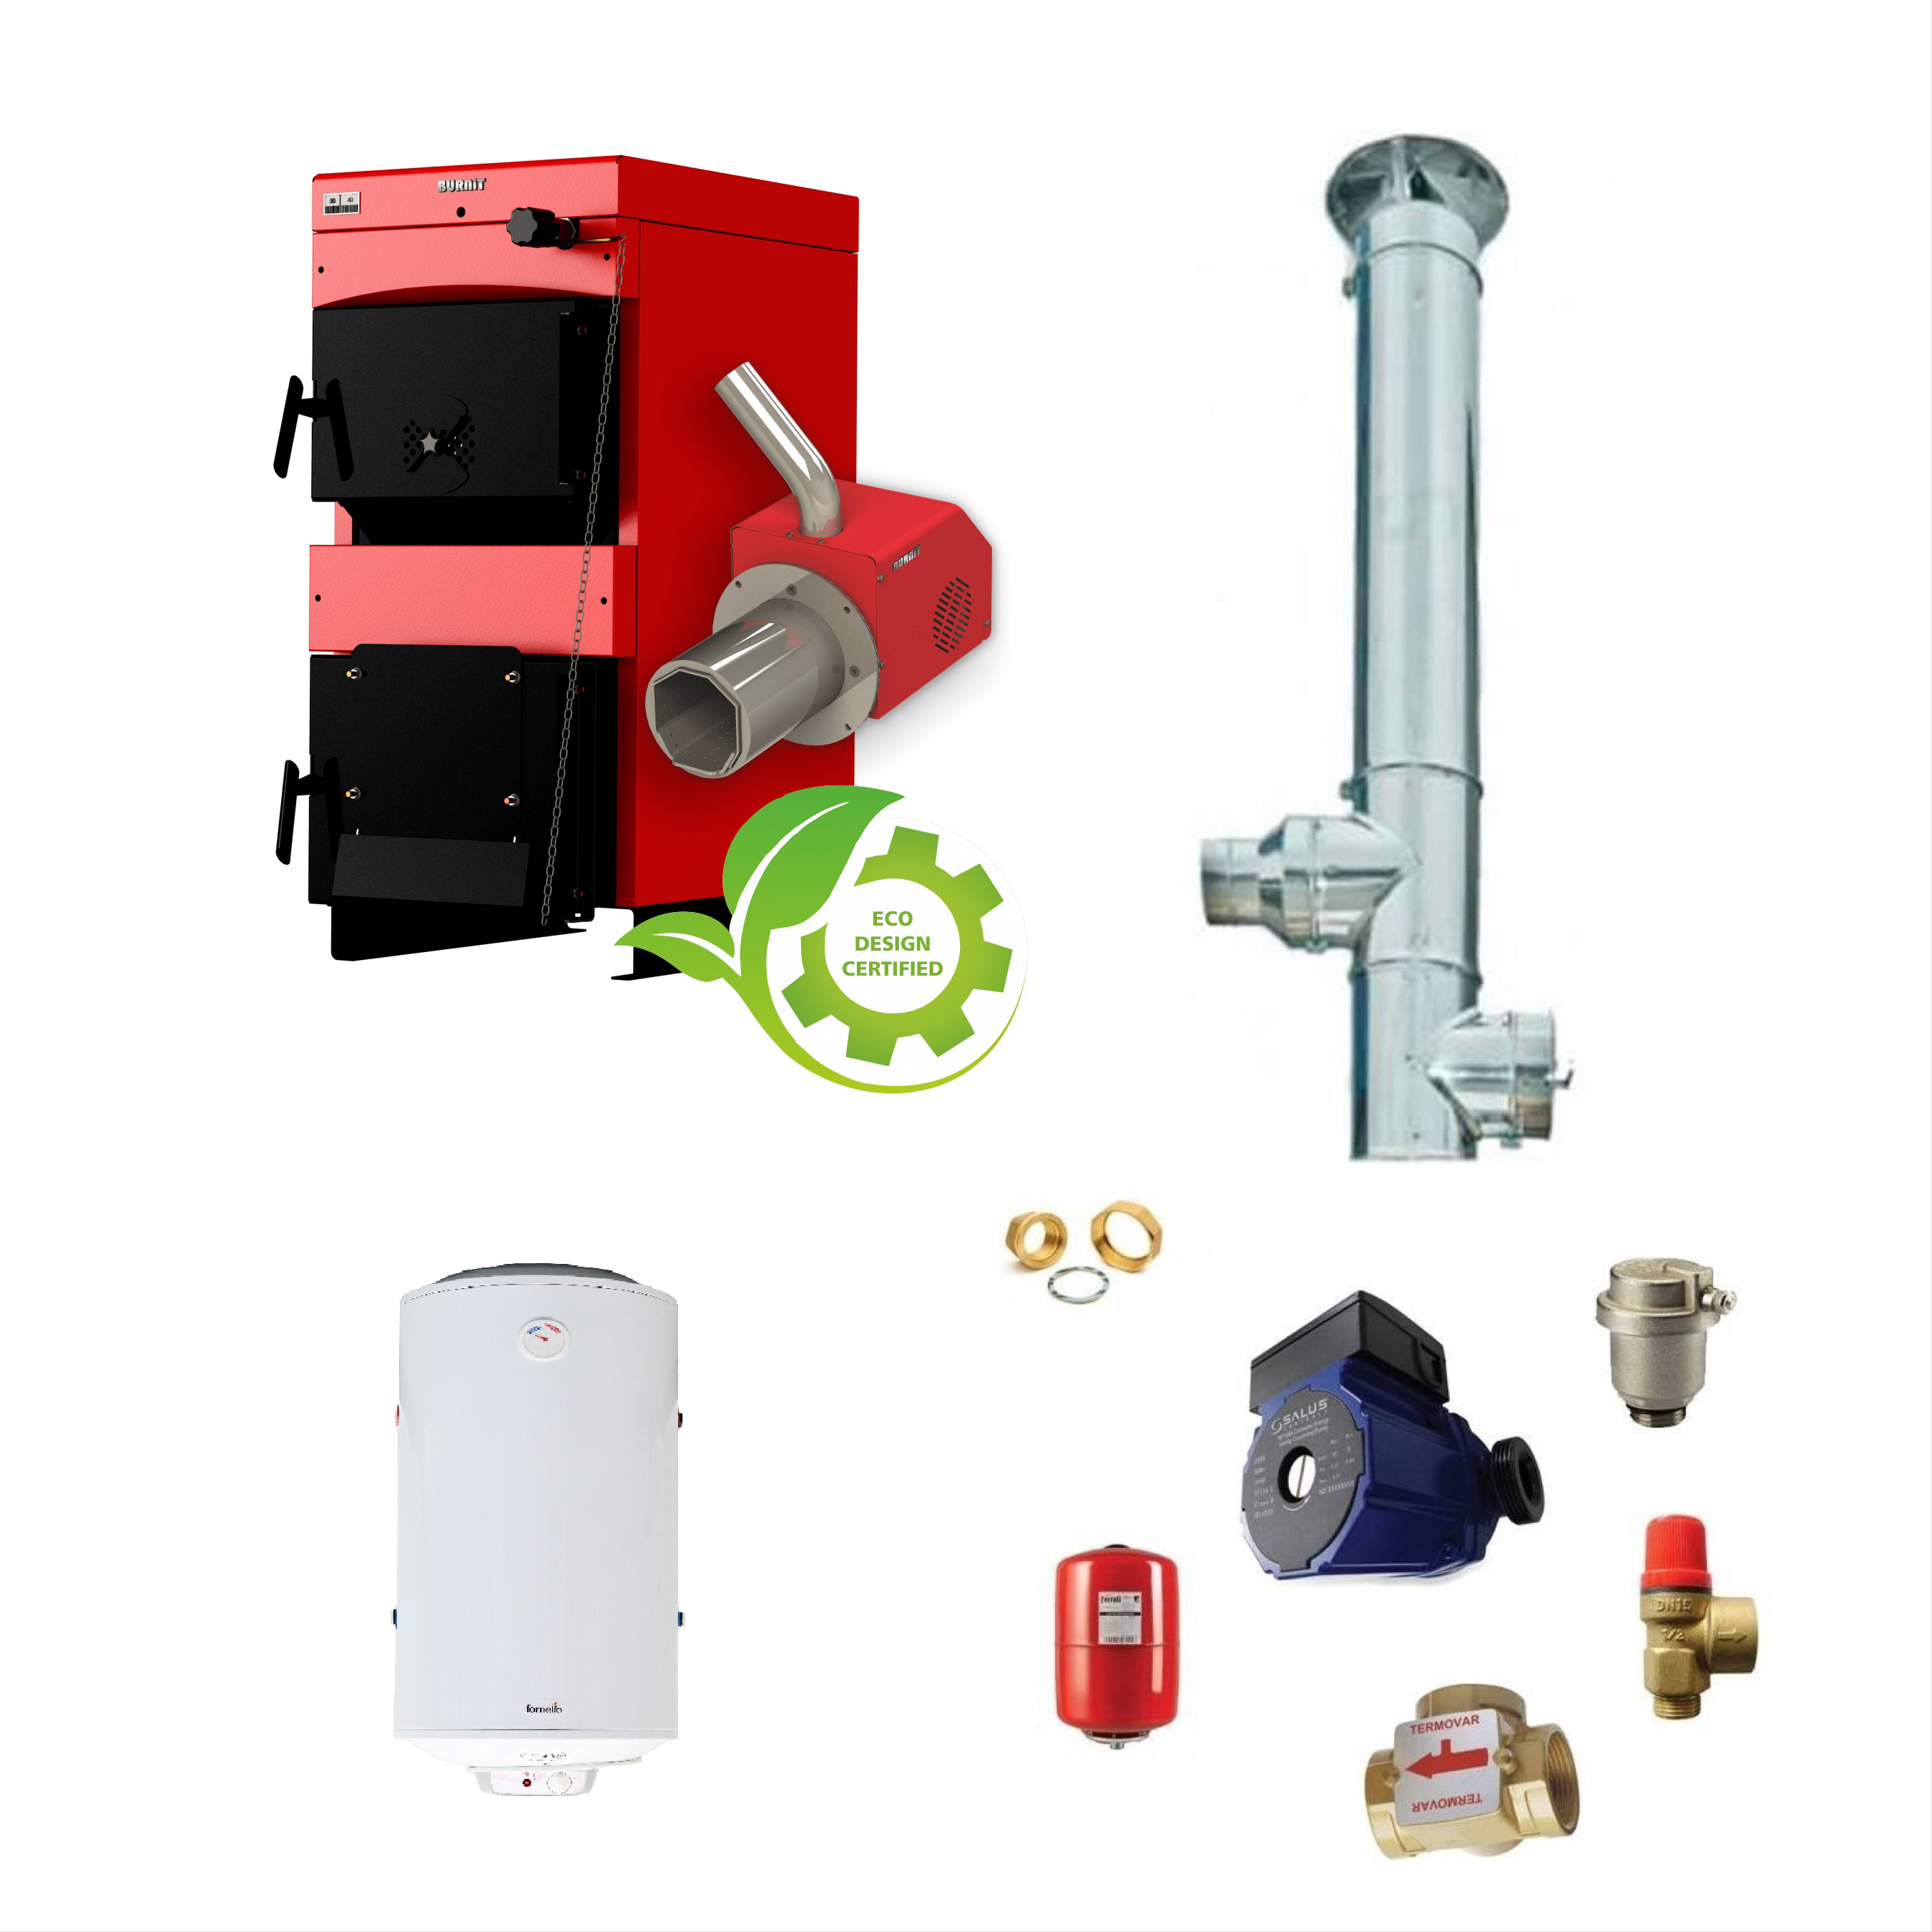 Pachet Centrala mixta lemn si peleti Burnit WBS 30 kW si Arzator pe peleti Pell Eco 35 kW, boiler Fornello 80 l, pompa 25-60, vas expansiune, supapa, aerisitor, termostat de contact, vana 3 cai, cos inox diametru 200 mm dublu perete, inaltime 6 metri fornello imagine